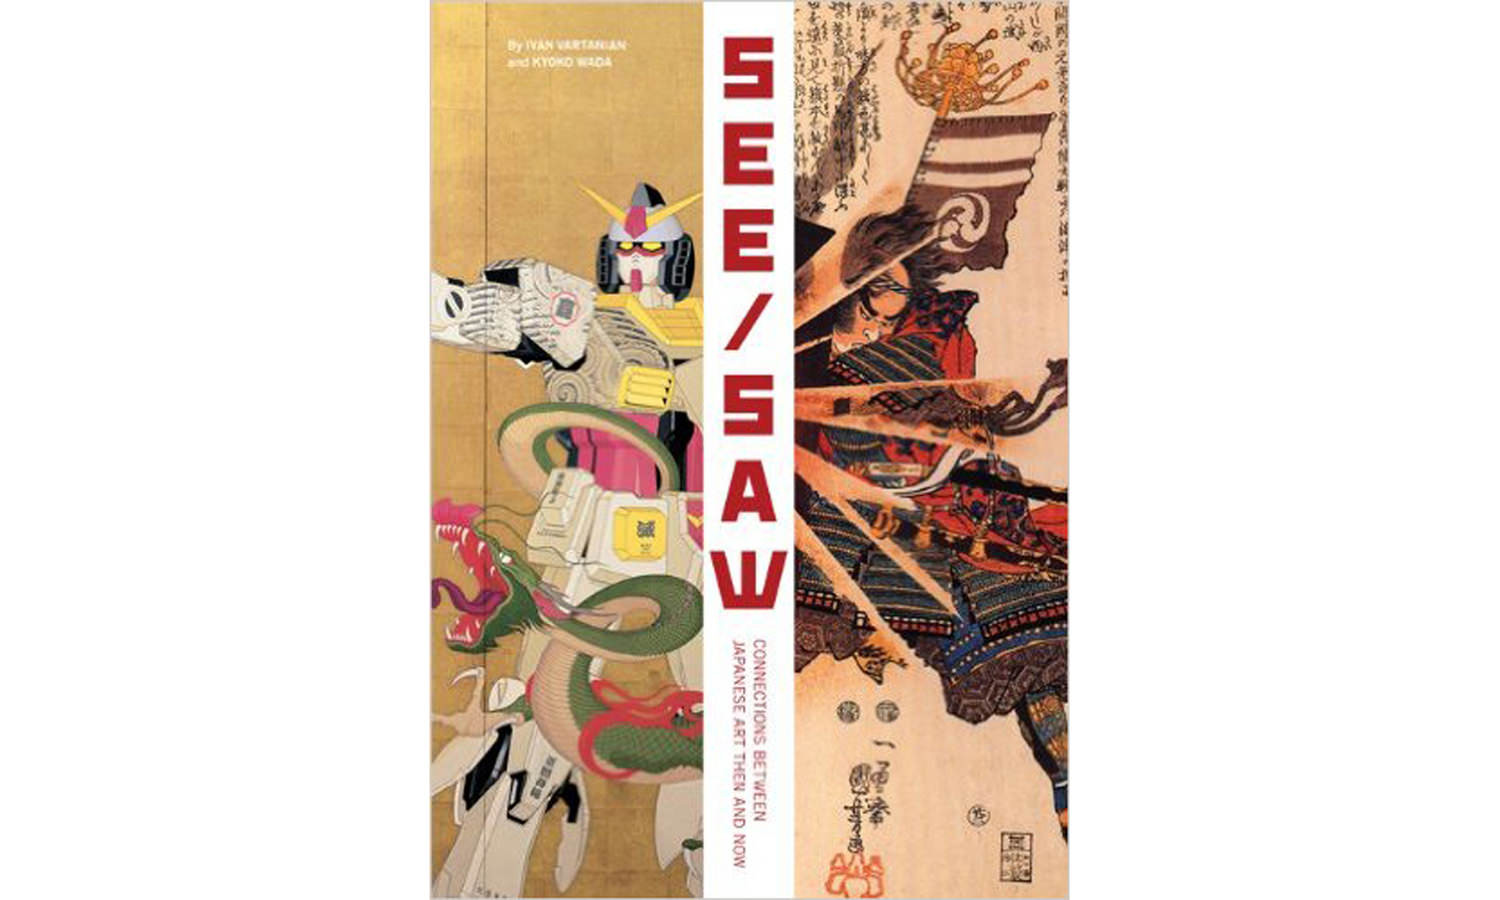 SEE SAW Connections Between Japanese Art Then and Now